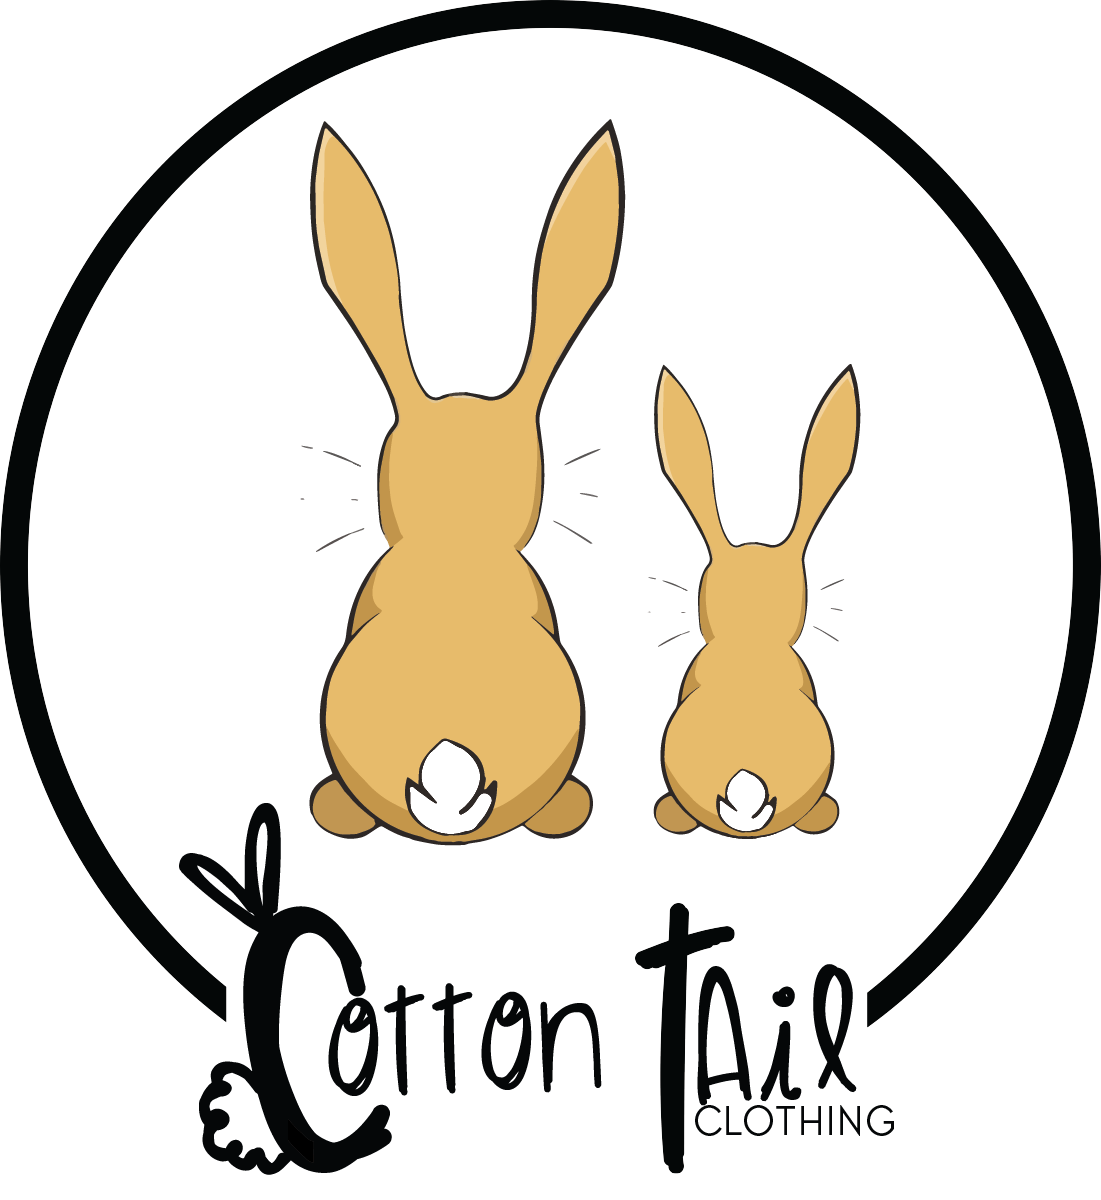 Cotton Tail Clothing